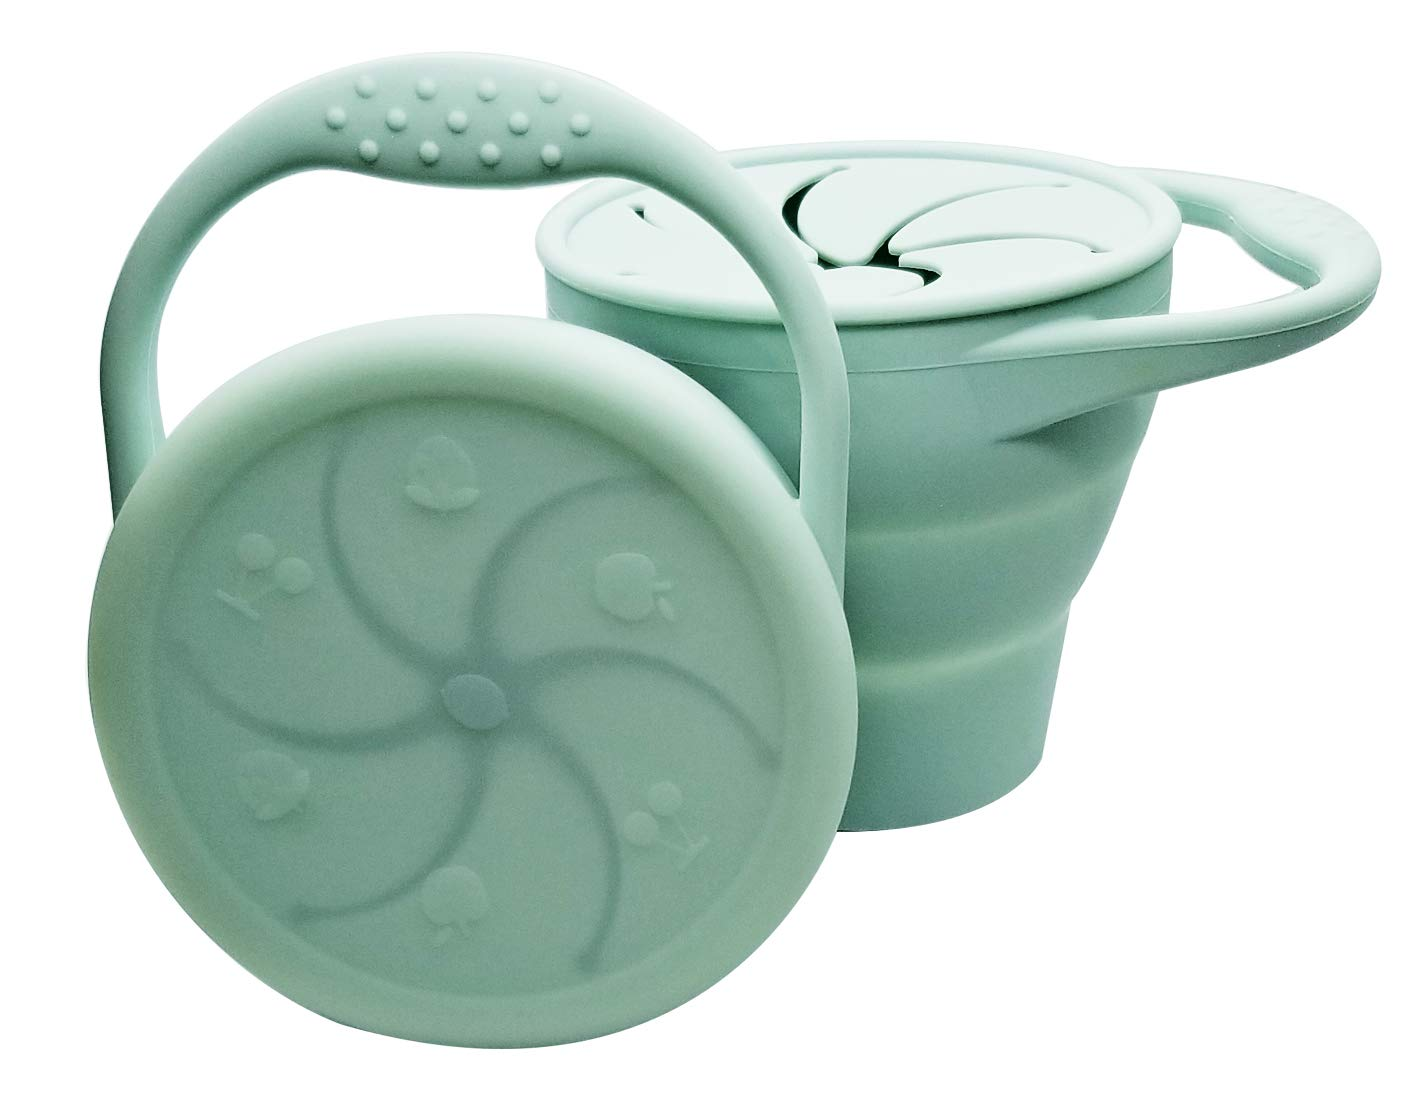 Snack Attack | Toddler Snack Cup Baby Snack Container Collapsible Silicone Snack Catcher Lid No Spill (Mint Green)